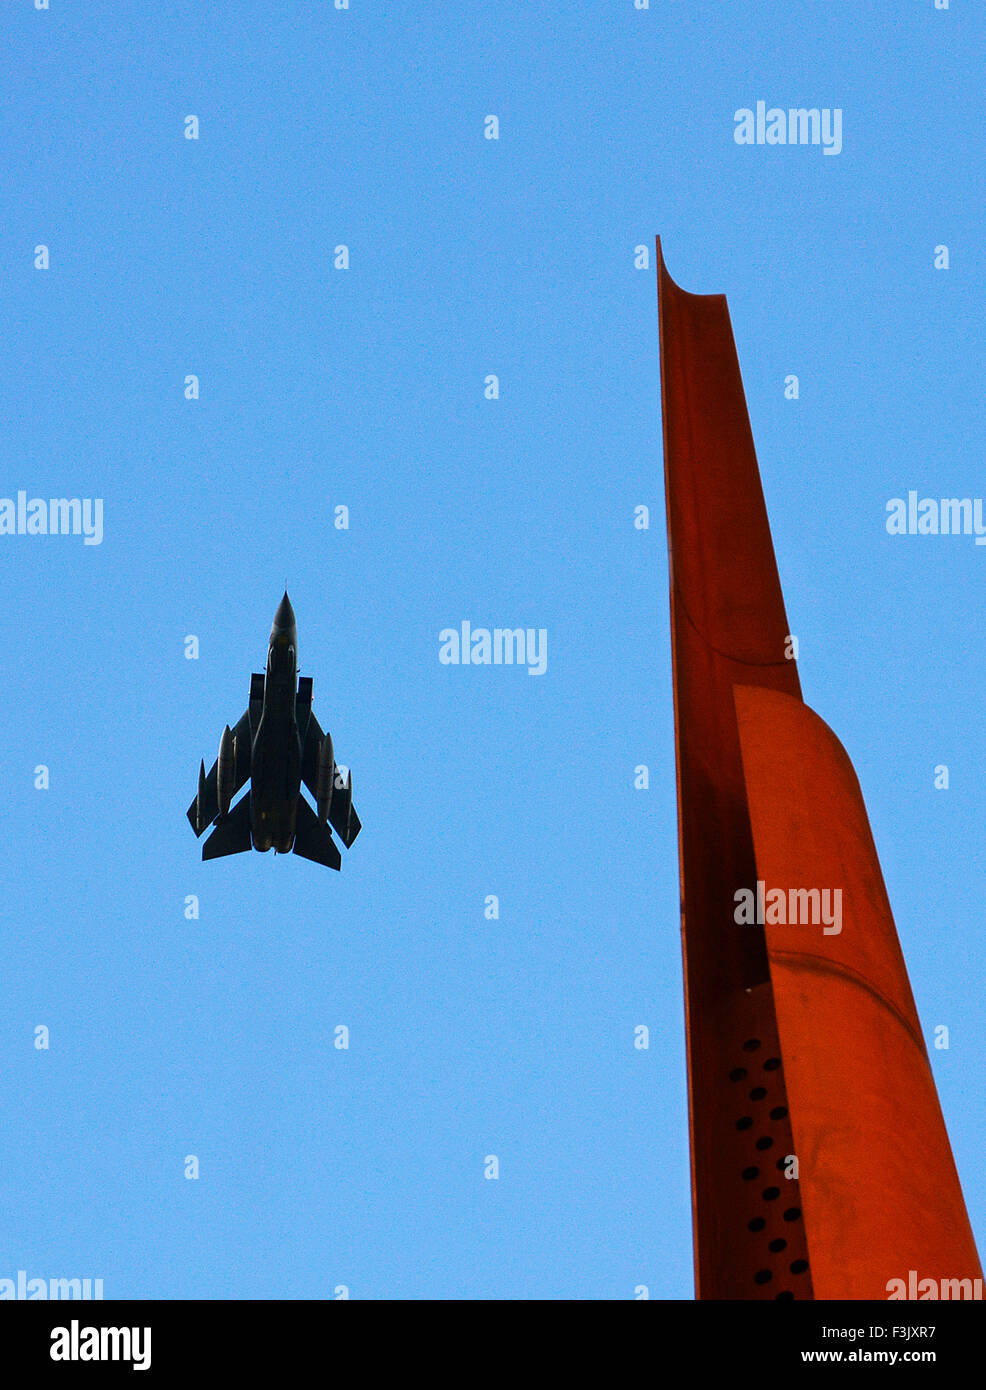 A Tornado overflight by 'MacRobert's Reply' at The International Bomber Command Centre's Memorial - Stock Image